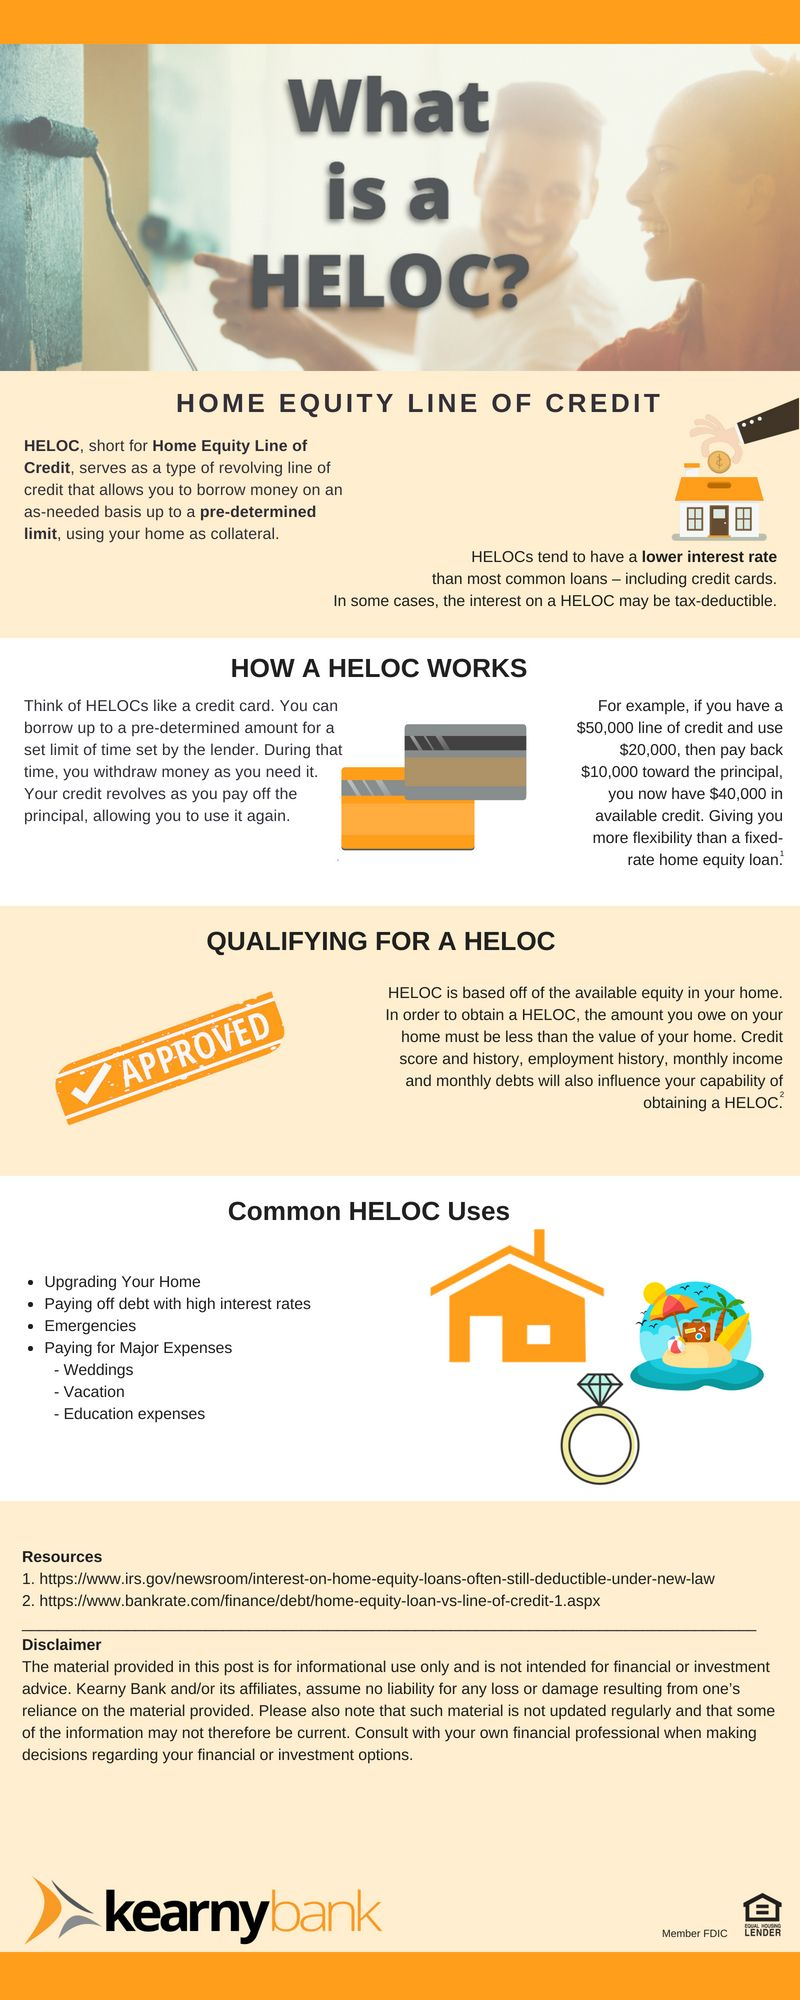 Quick And Easy Helpful Infographic About What A Heloc Is